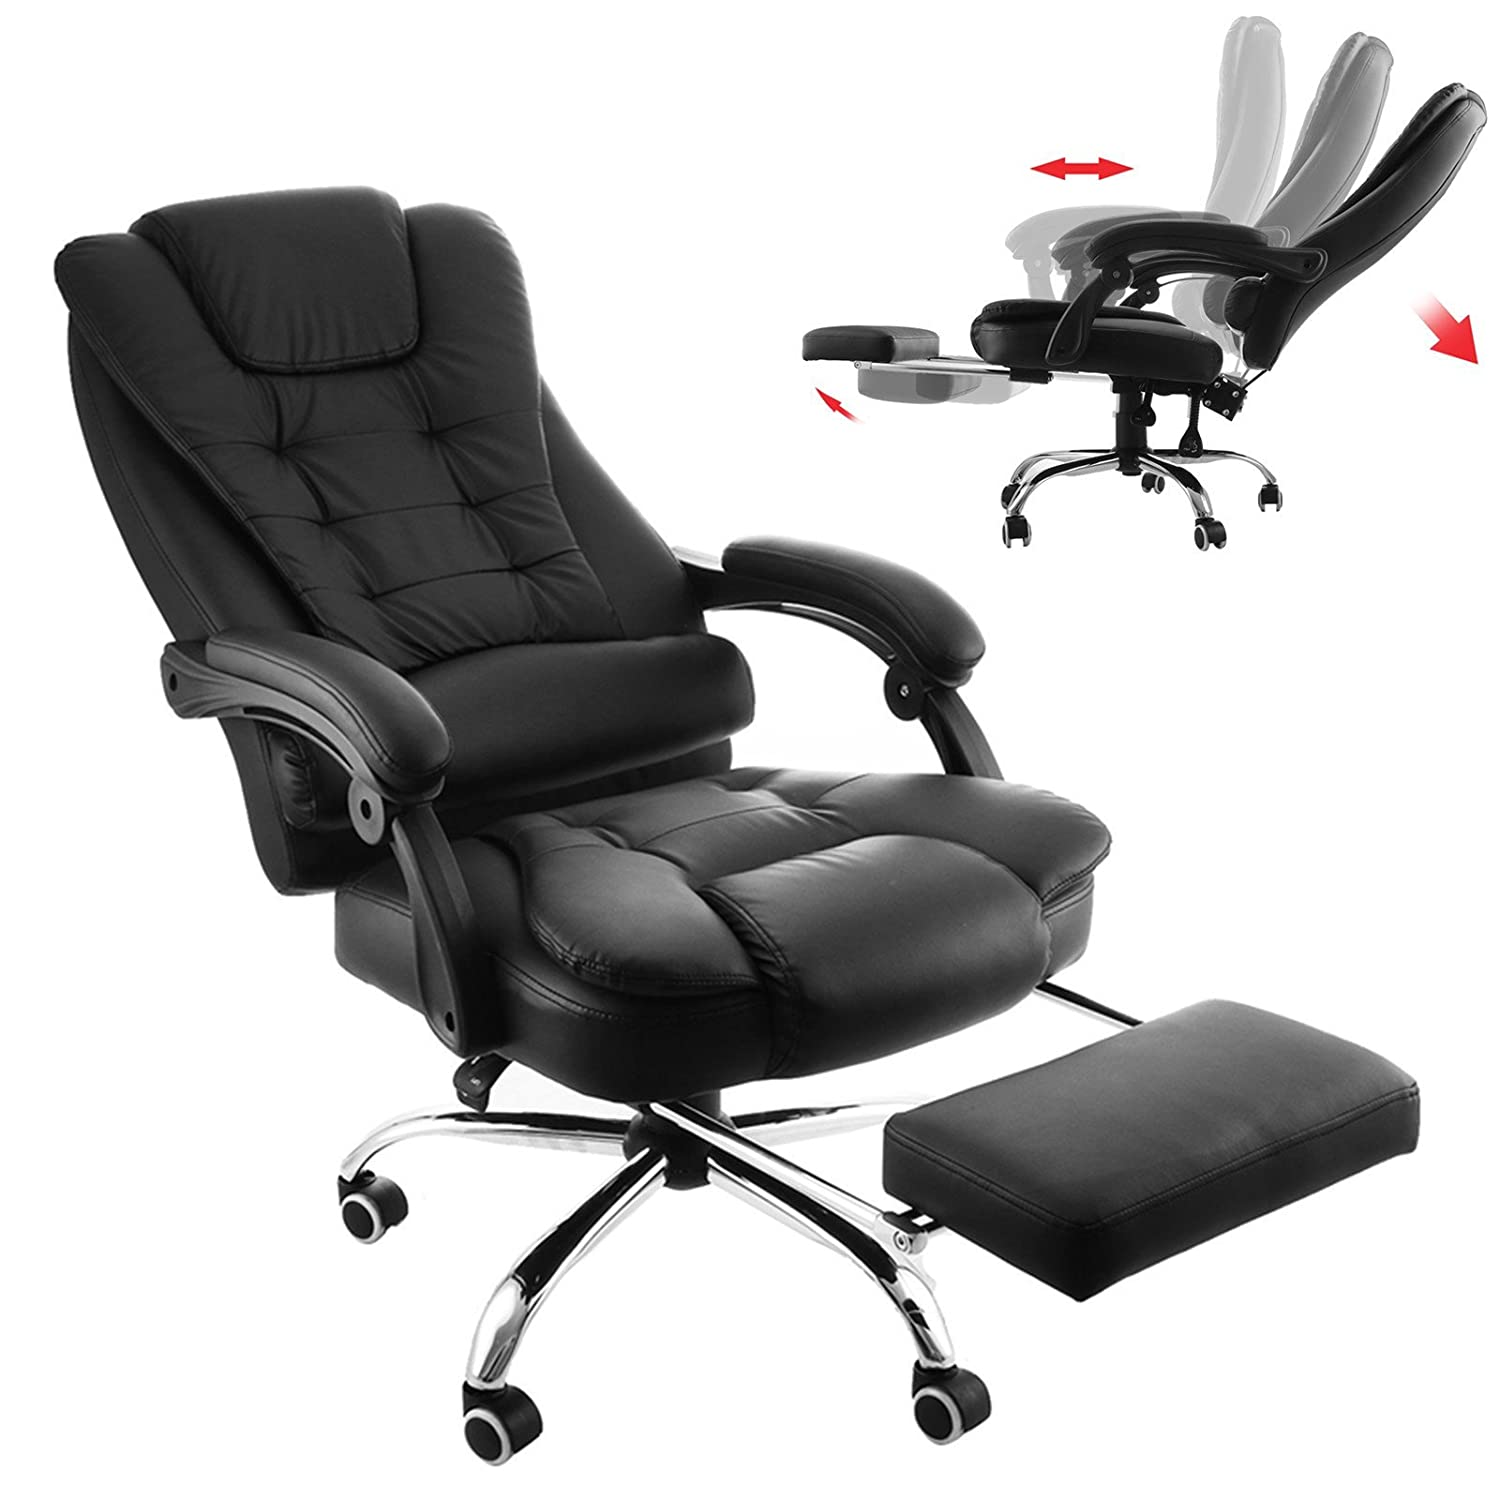 detailed look a1b53 8c23d Mophorn Executive Office Chair with Footrest PU Leather High-Back Reclining  Office Chair Adjustable Reclining Computer Chair Napping Armchair ...